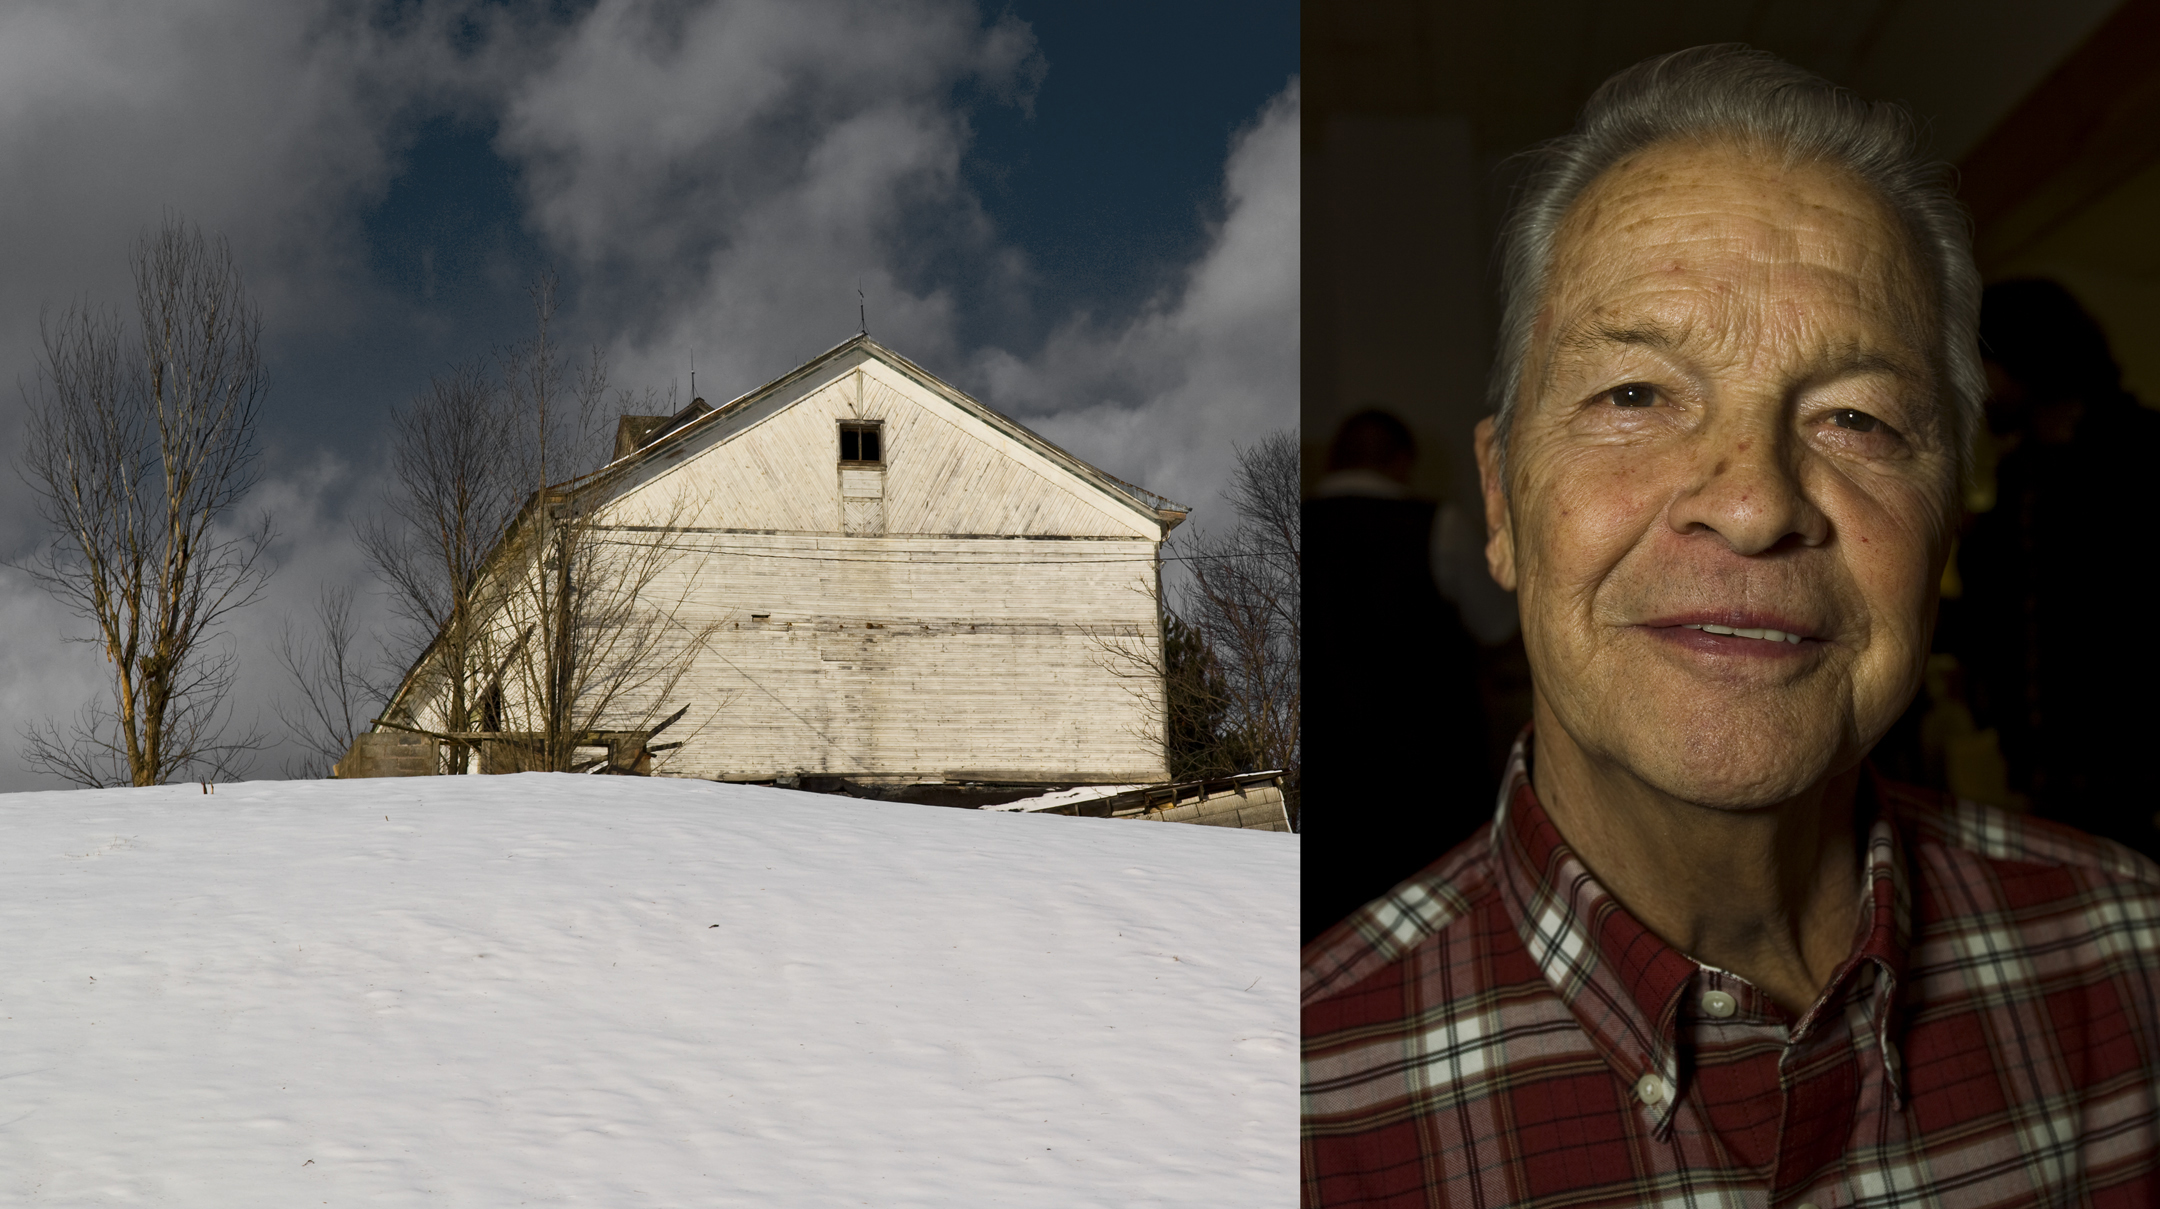 Man With White Barn